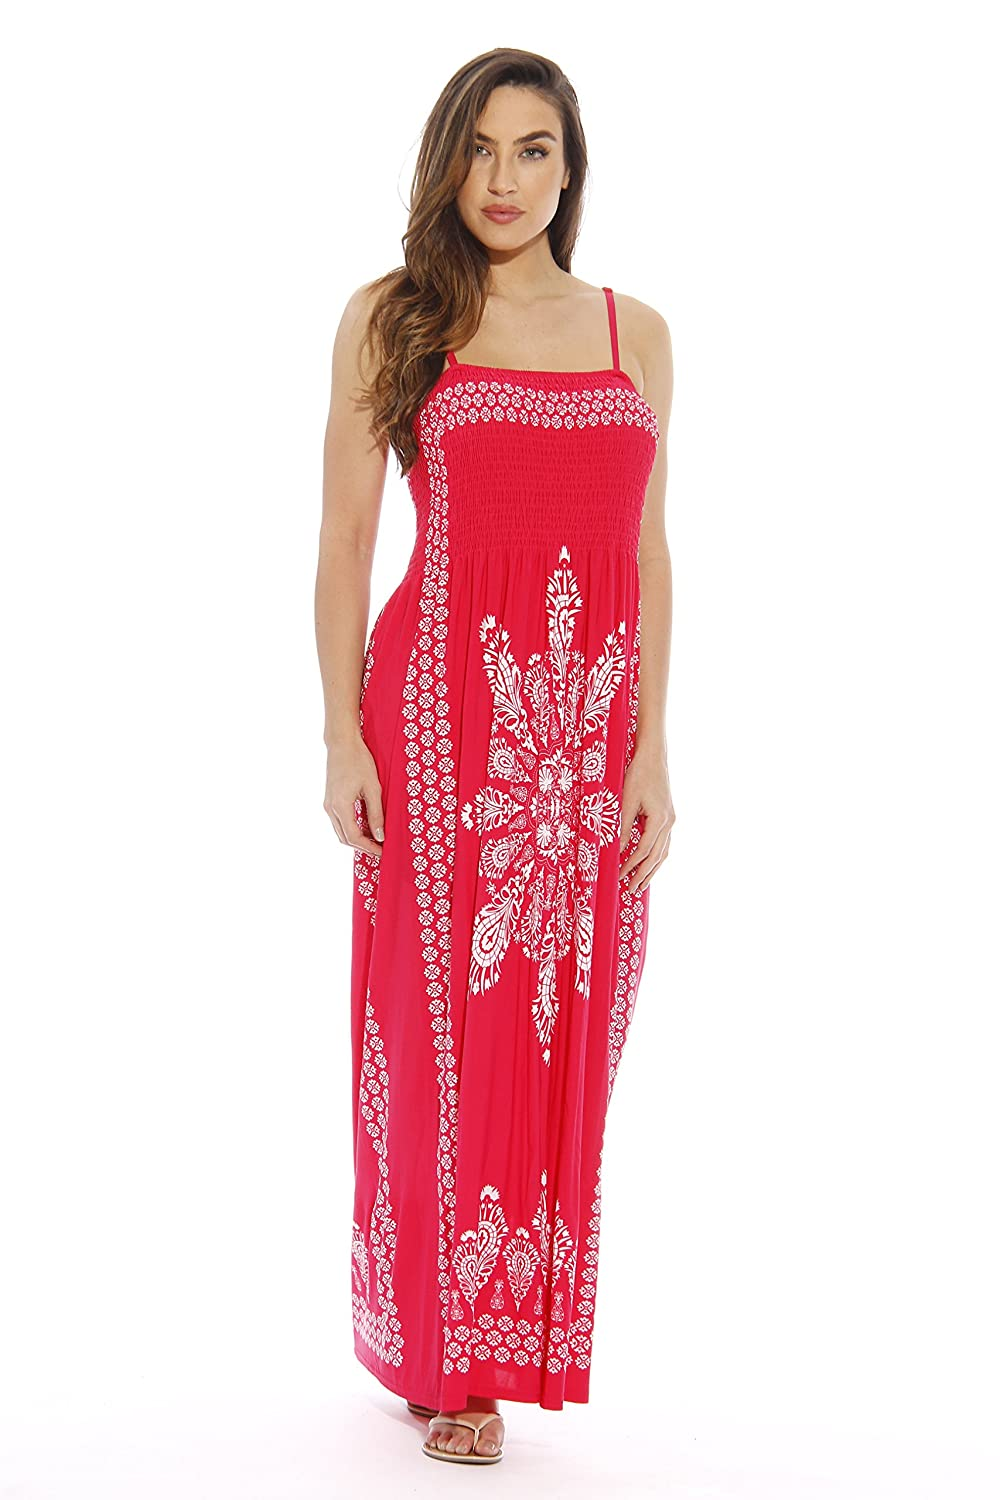 Just Love Summer Dresses for Women - Petite to Plus Size Fit ...